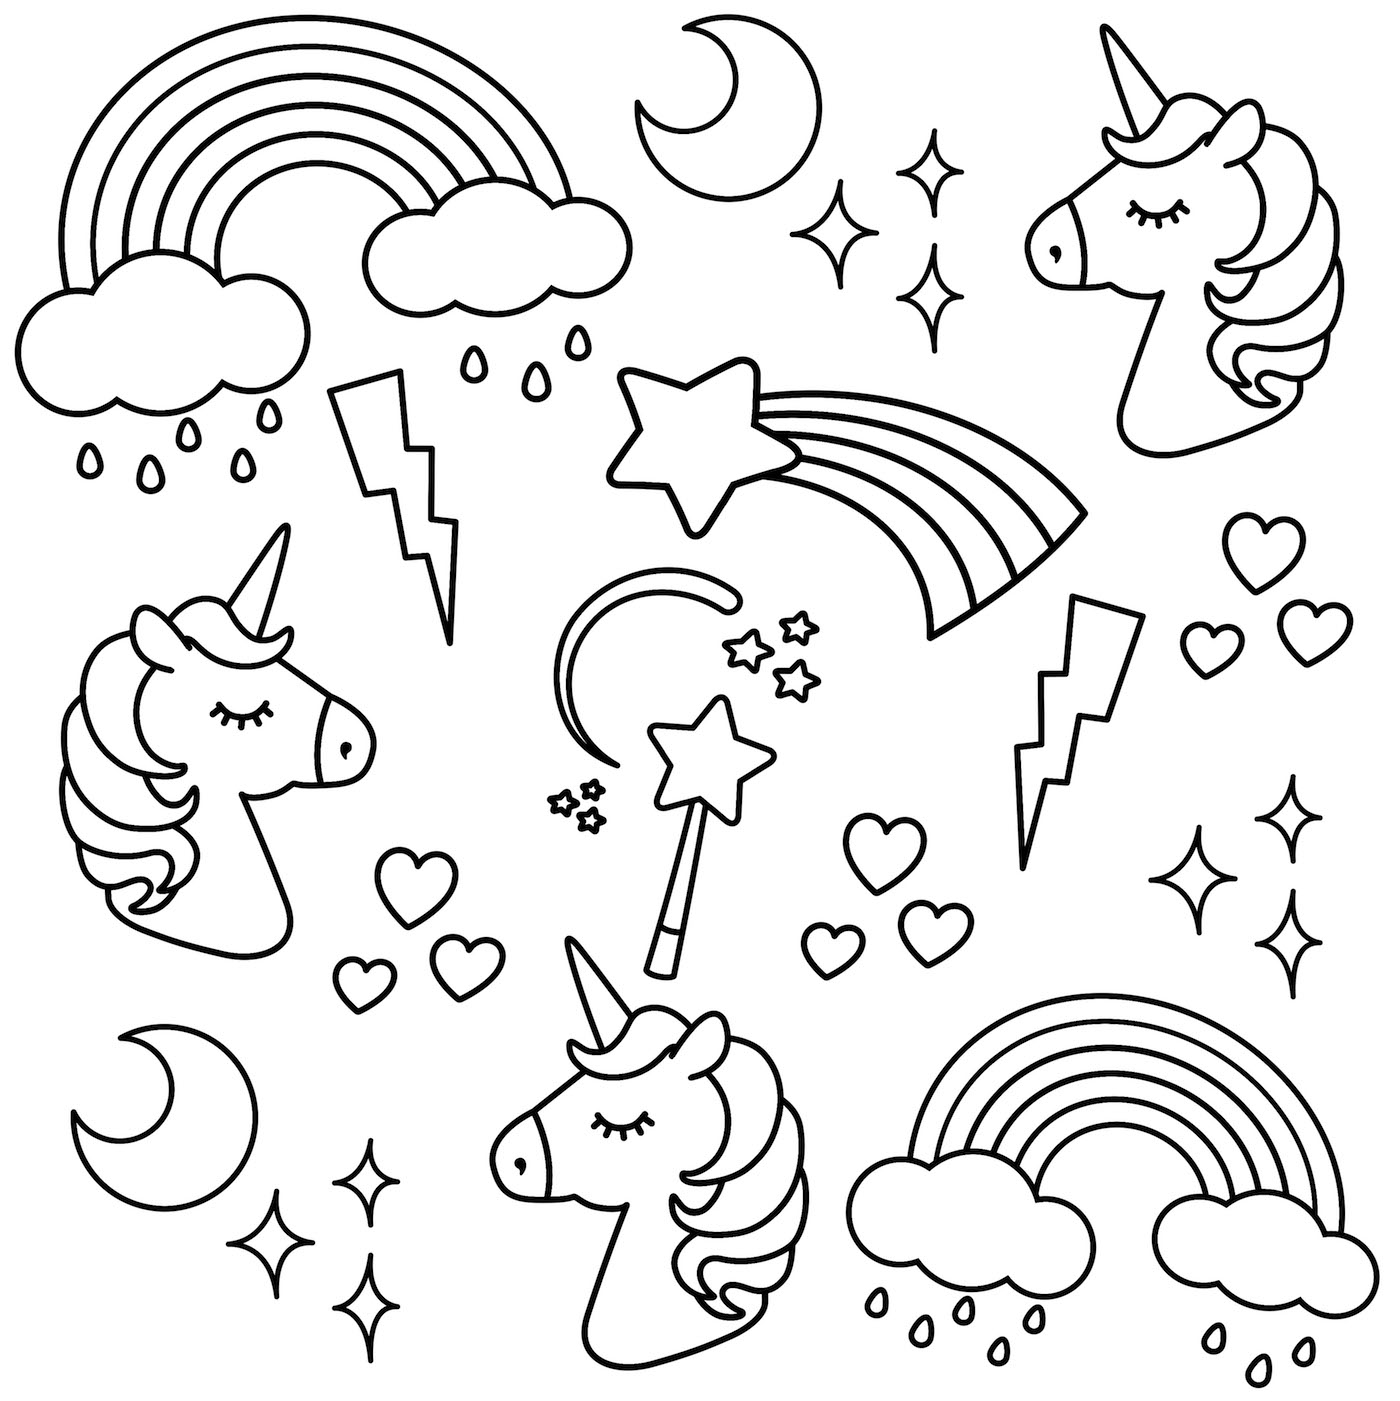 unicorn coloring sheets printable print download unicorn coloring pages for children sheets printable coloring unicorn